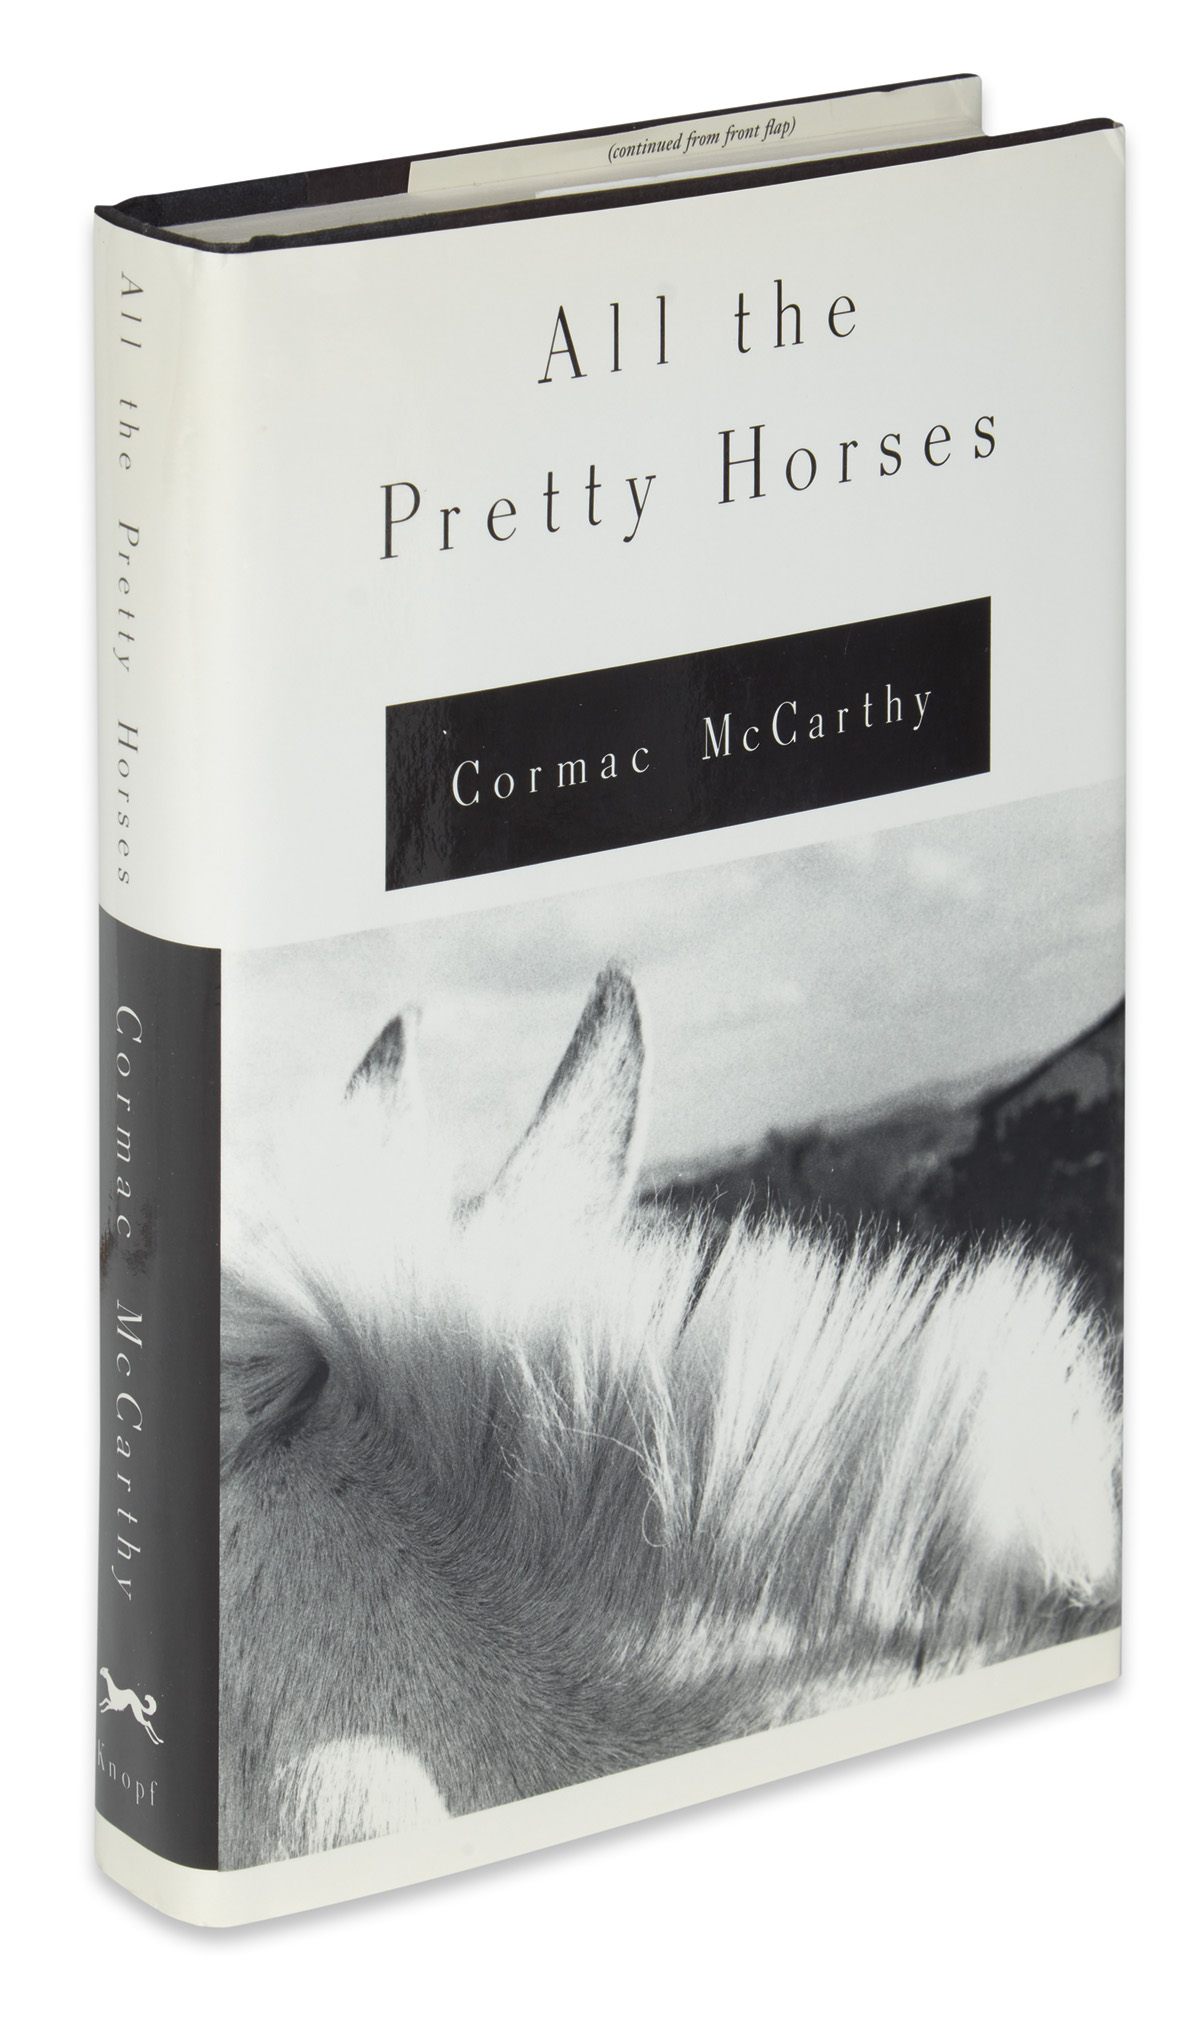 MCCARTHY-CORMAC-All-the-Pretty-Horses